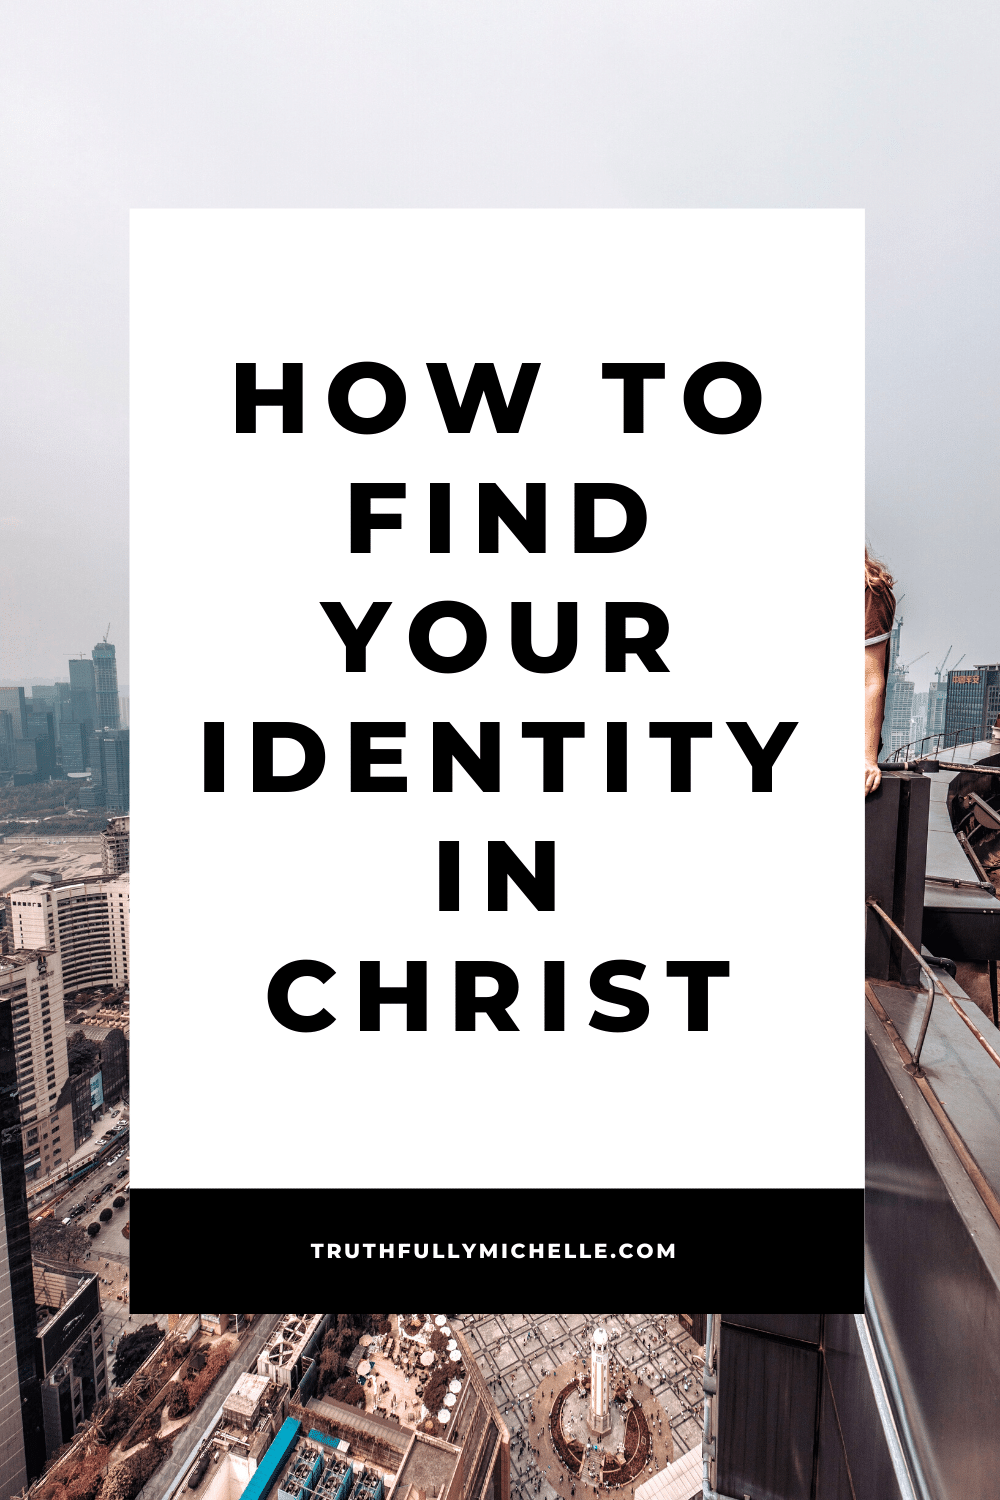 how to find your identity in christ, identity in christ woman truths, my true identity in christ, finding your identity in christ, finding my identity in christ, what is my identity in christ, my identity in God, finding identity in God, find your identity in God, our identity in God